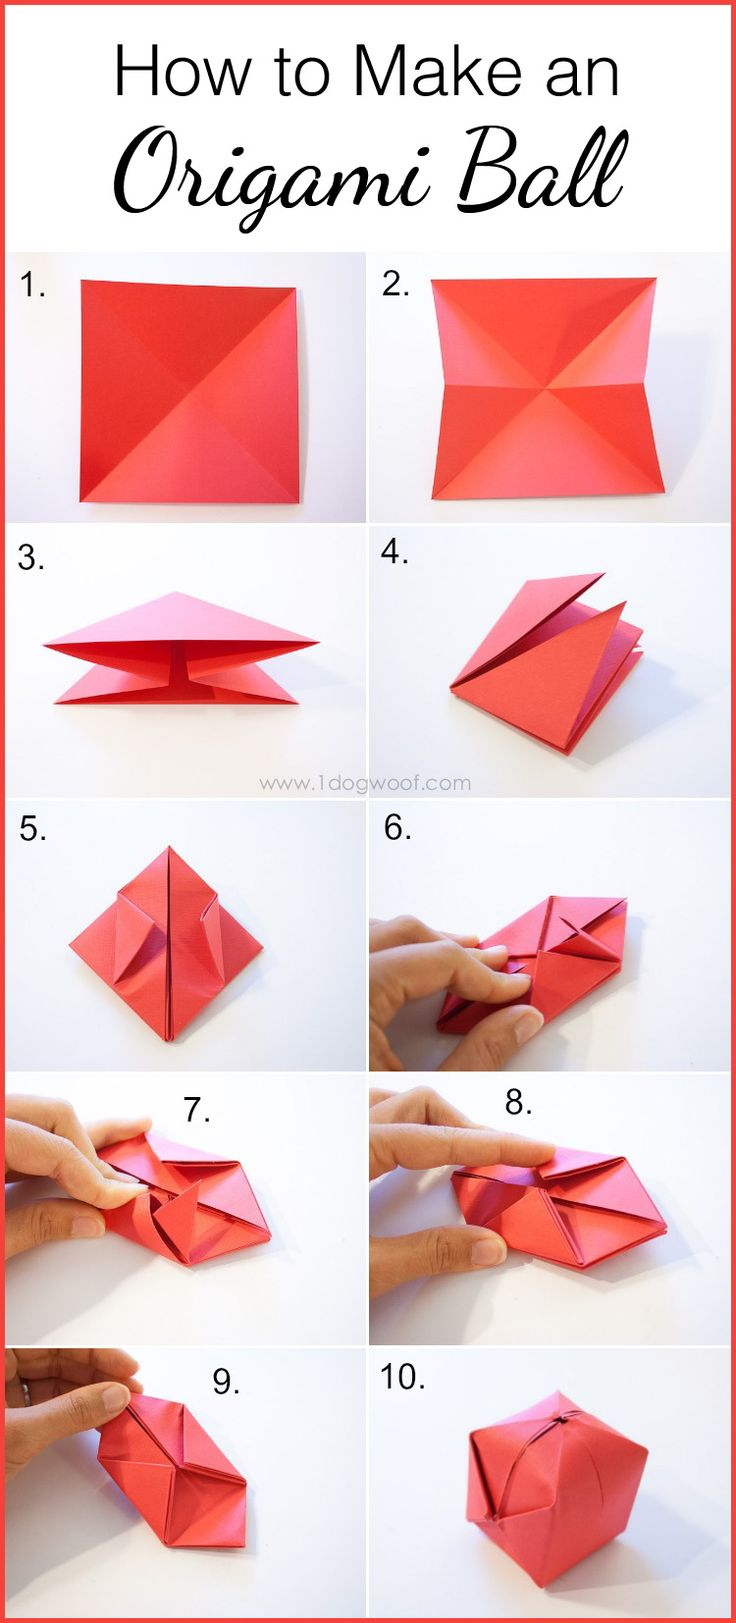 How to Make an Origami Ball | www.1dogwoof.com